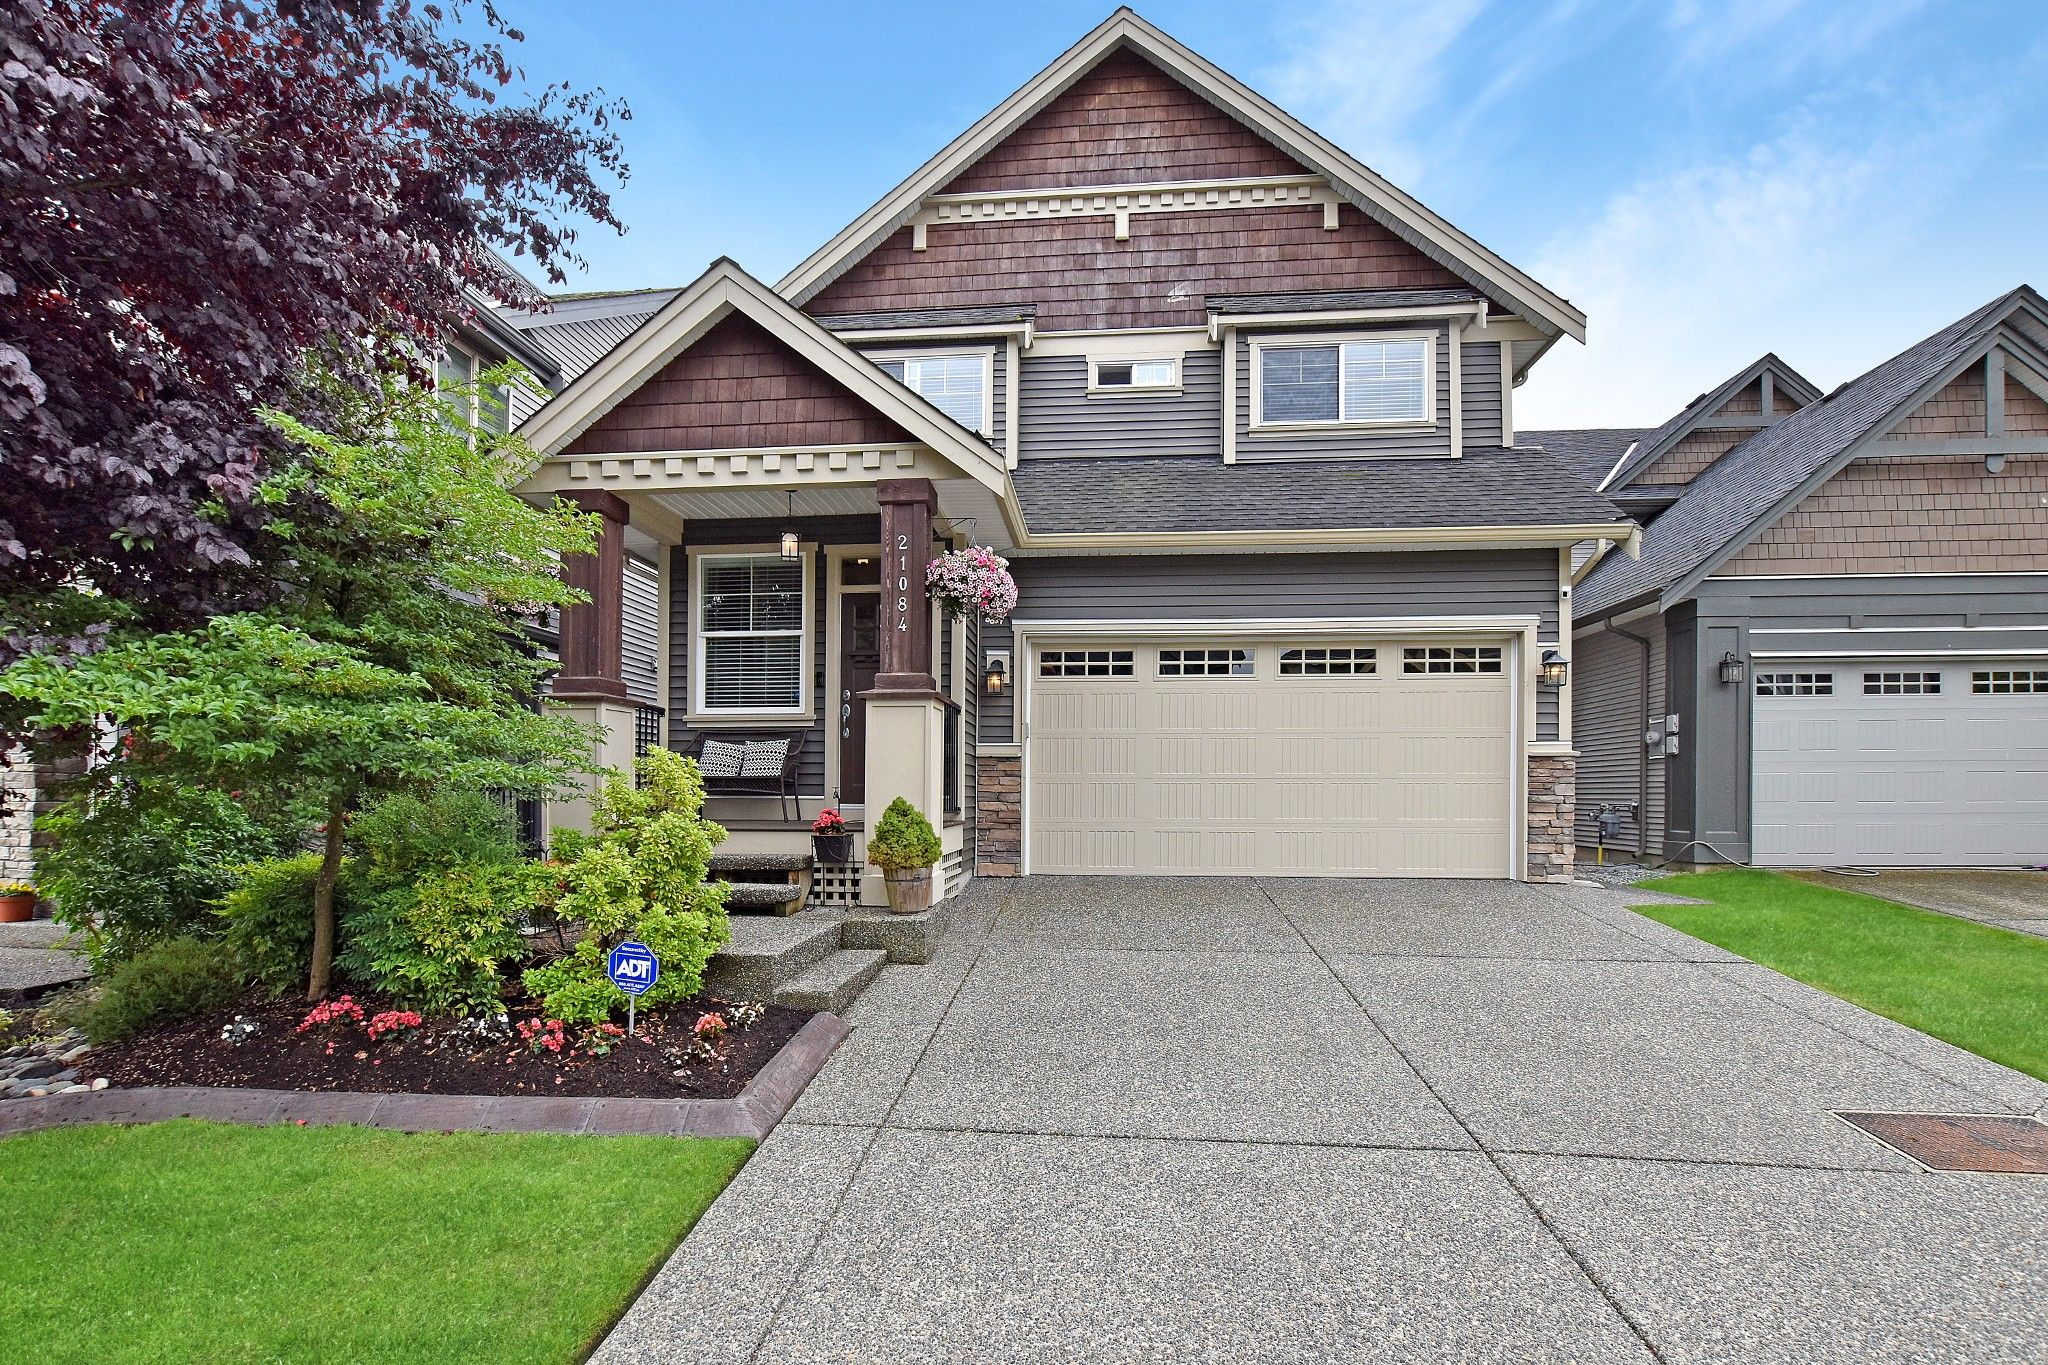 Main Photo: 21084 78B Avenue in Langley: Willoughby Heights House for sale : MLS®# R2385292